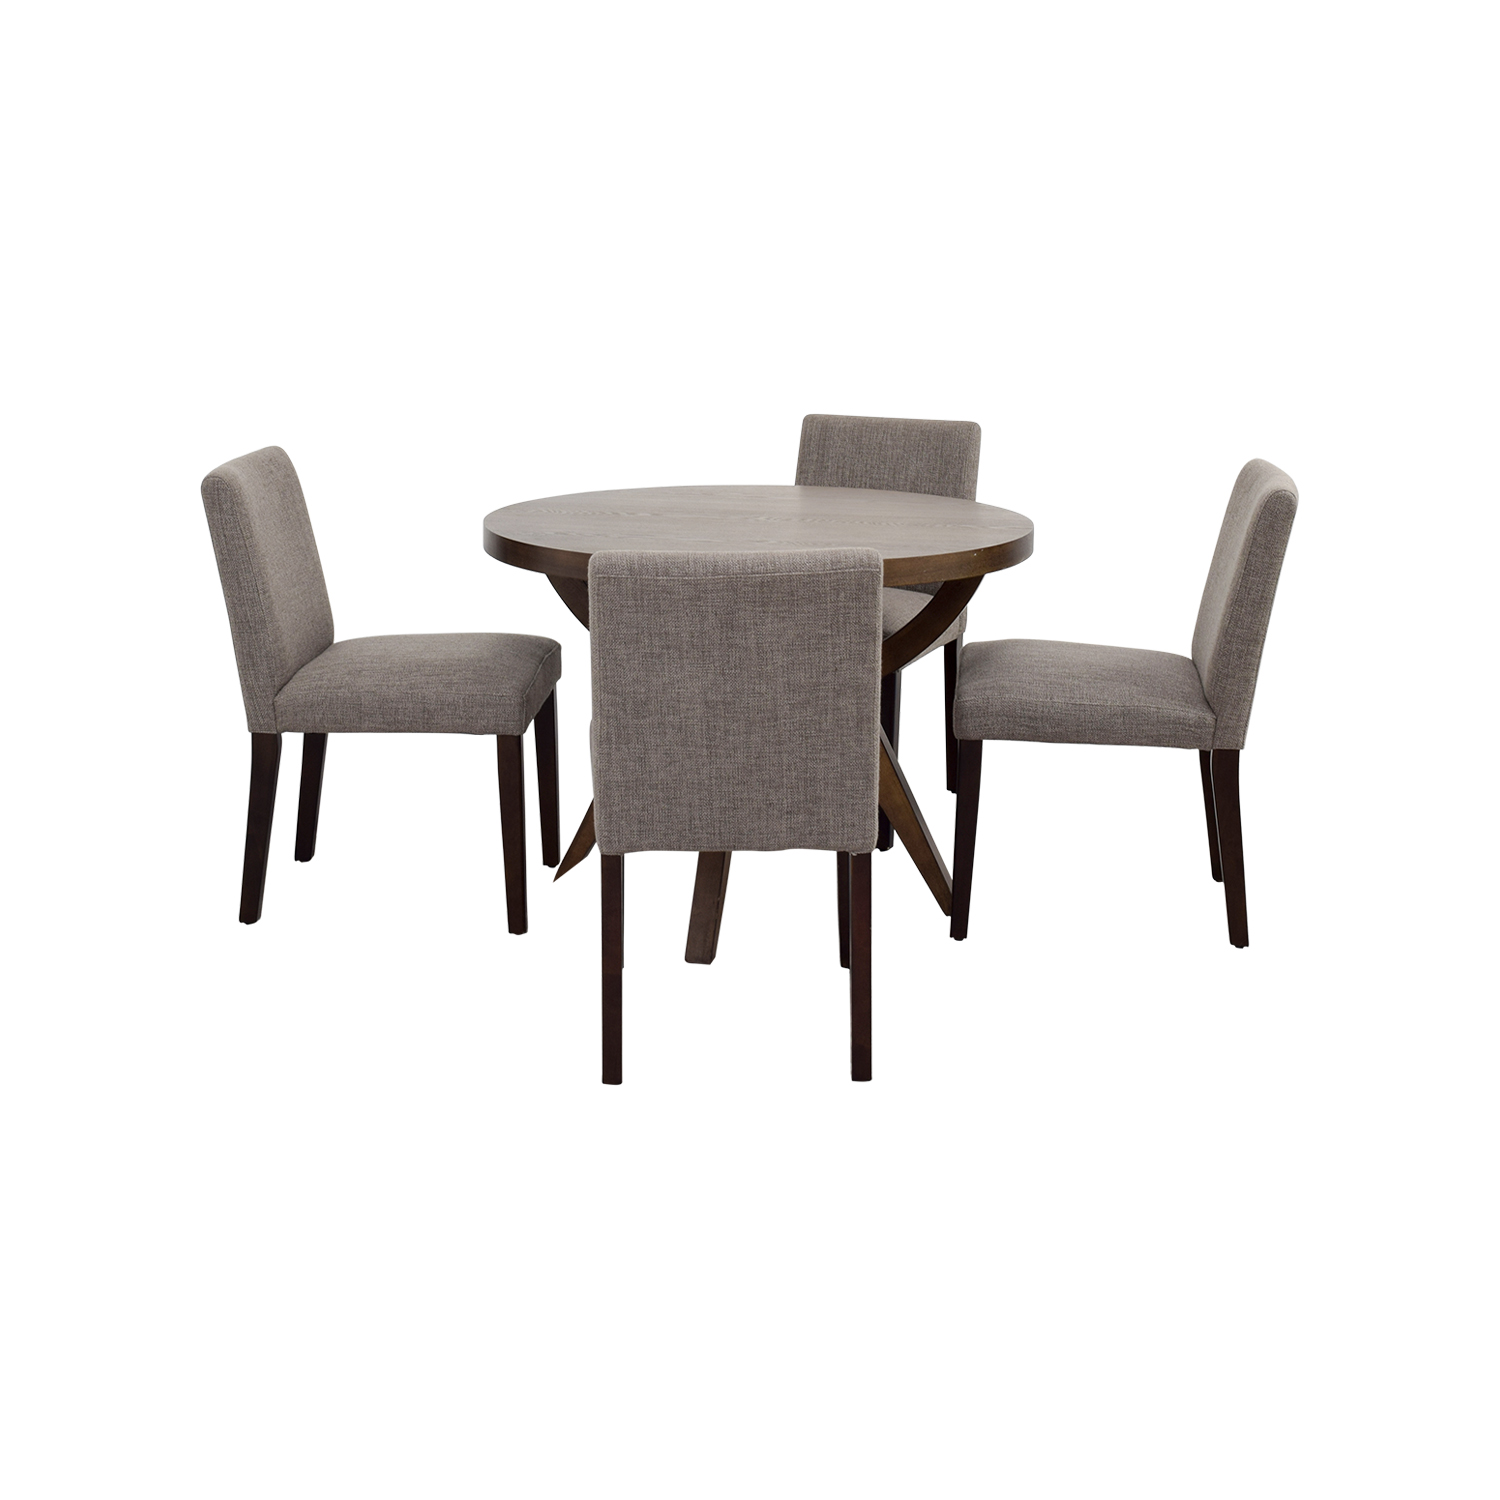 51 off west elm west elm arc base pedestal table and for Pedestal dining table and chairs